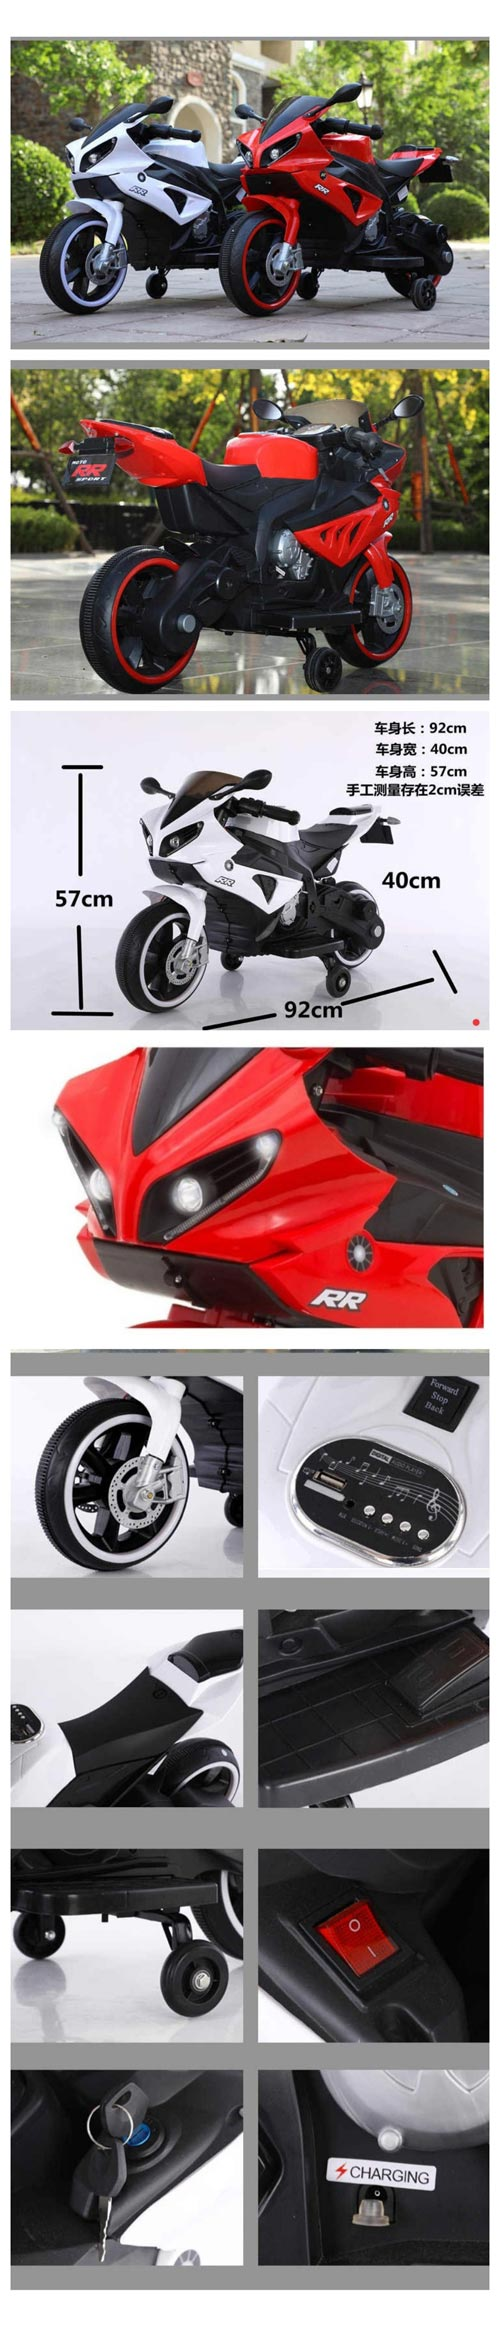 Rechargeable Battery Bike RR For Kids